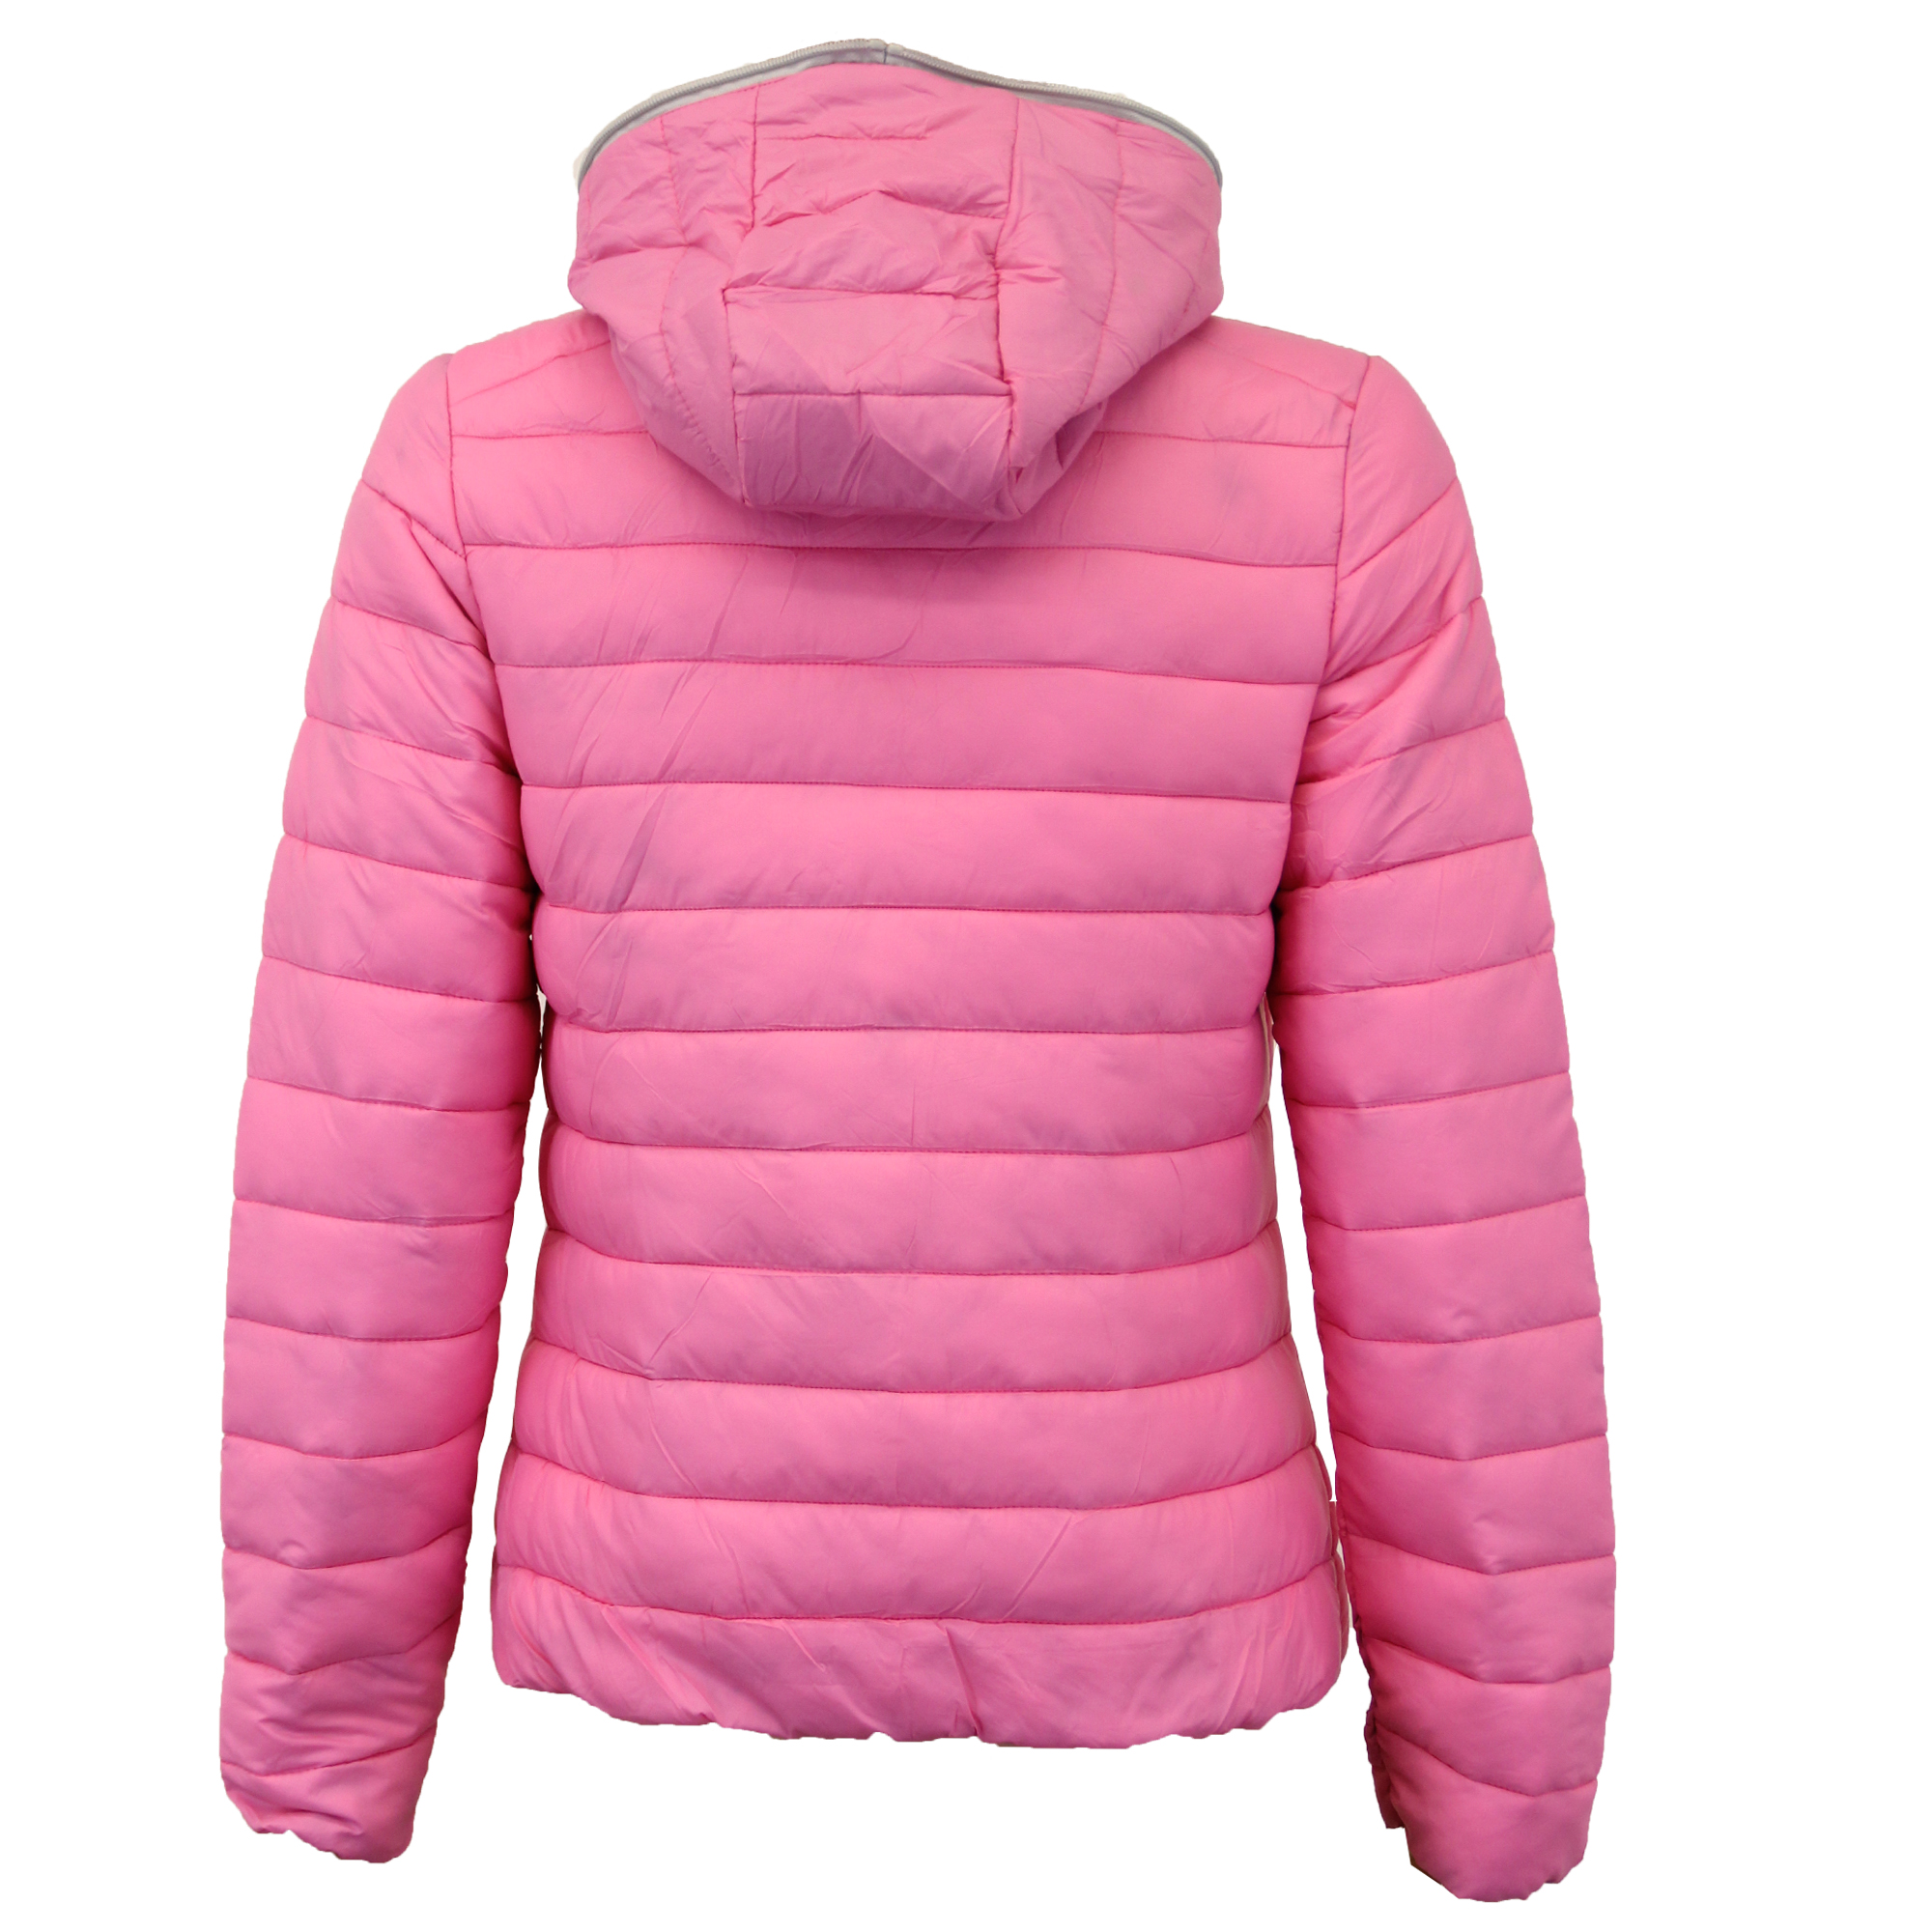 Women Ladies Hooded Padded Winter Leopard Jacket Parka Coat Zip Up Thick Hoodies. Brand New · Unbranded. $ Buy It Now. Free Shipping. LADIES PADDED JACKET BY NEXT SIZE 16, NAVY See more like this. New Listing Ladies Navy Down padded jacket with fur hood Large. Pre-Owned. $ Time left 6d 3h left.